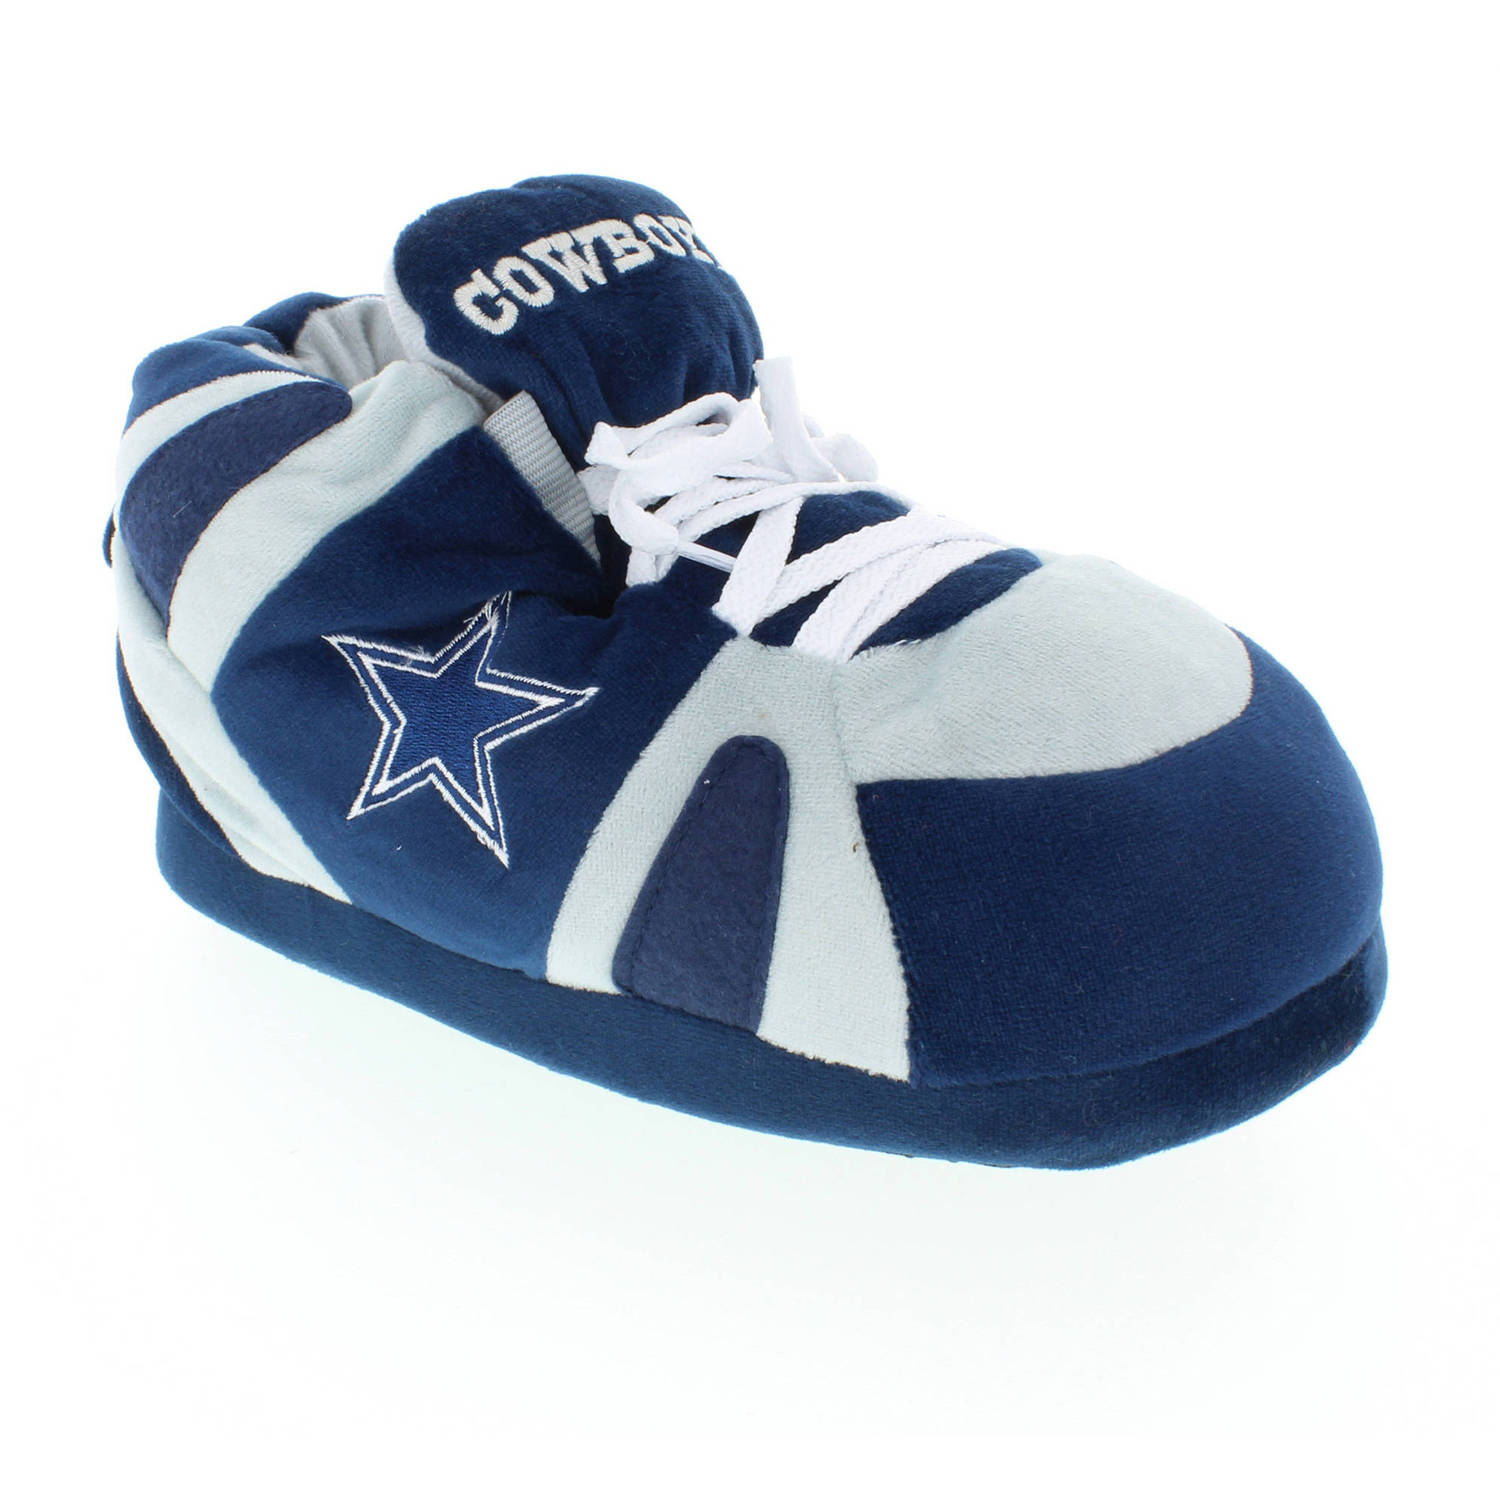 Comfy Feet - NFL Dallas Cowboys Slipper